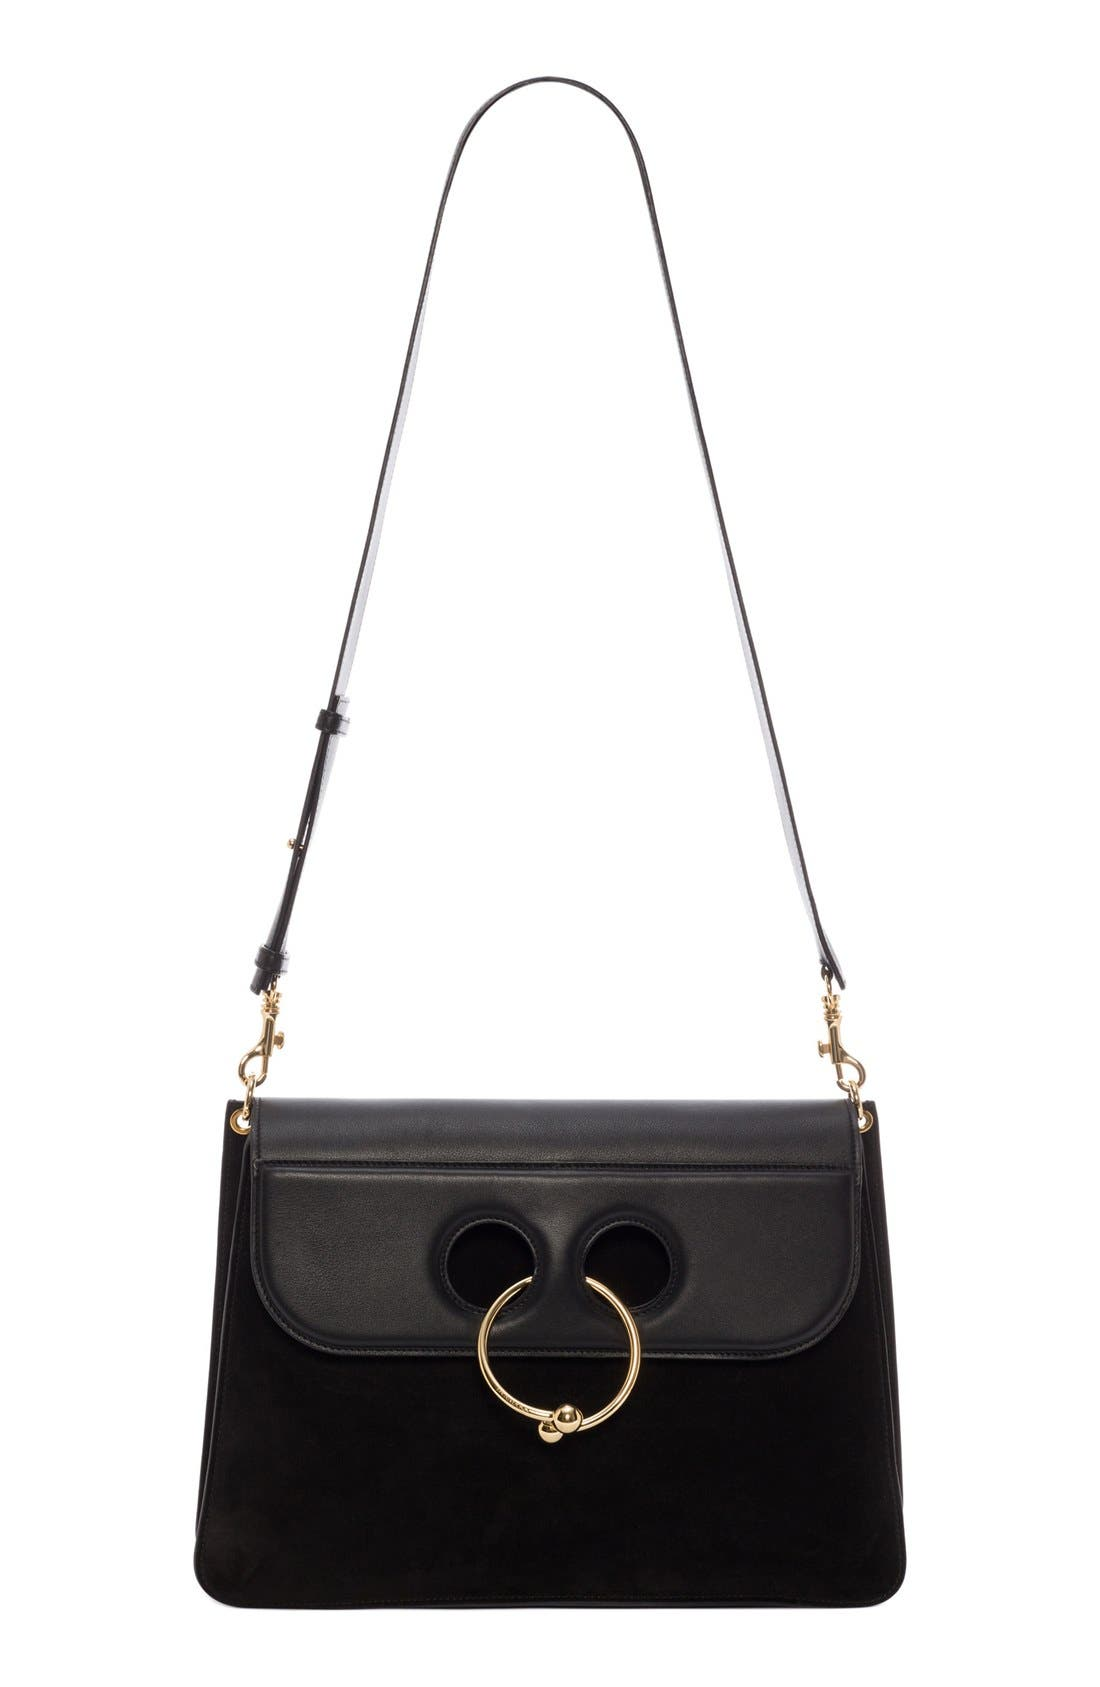 J.W.ANDERSON Large Pierce Shoulder Bag